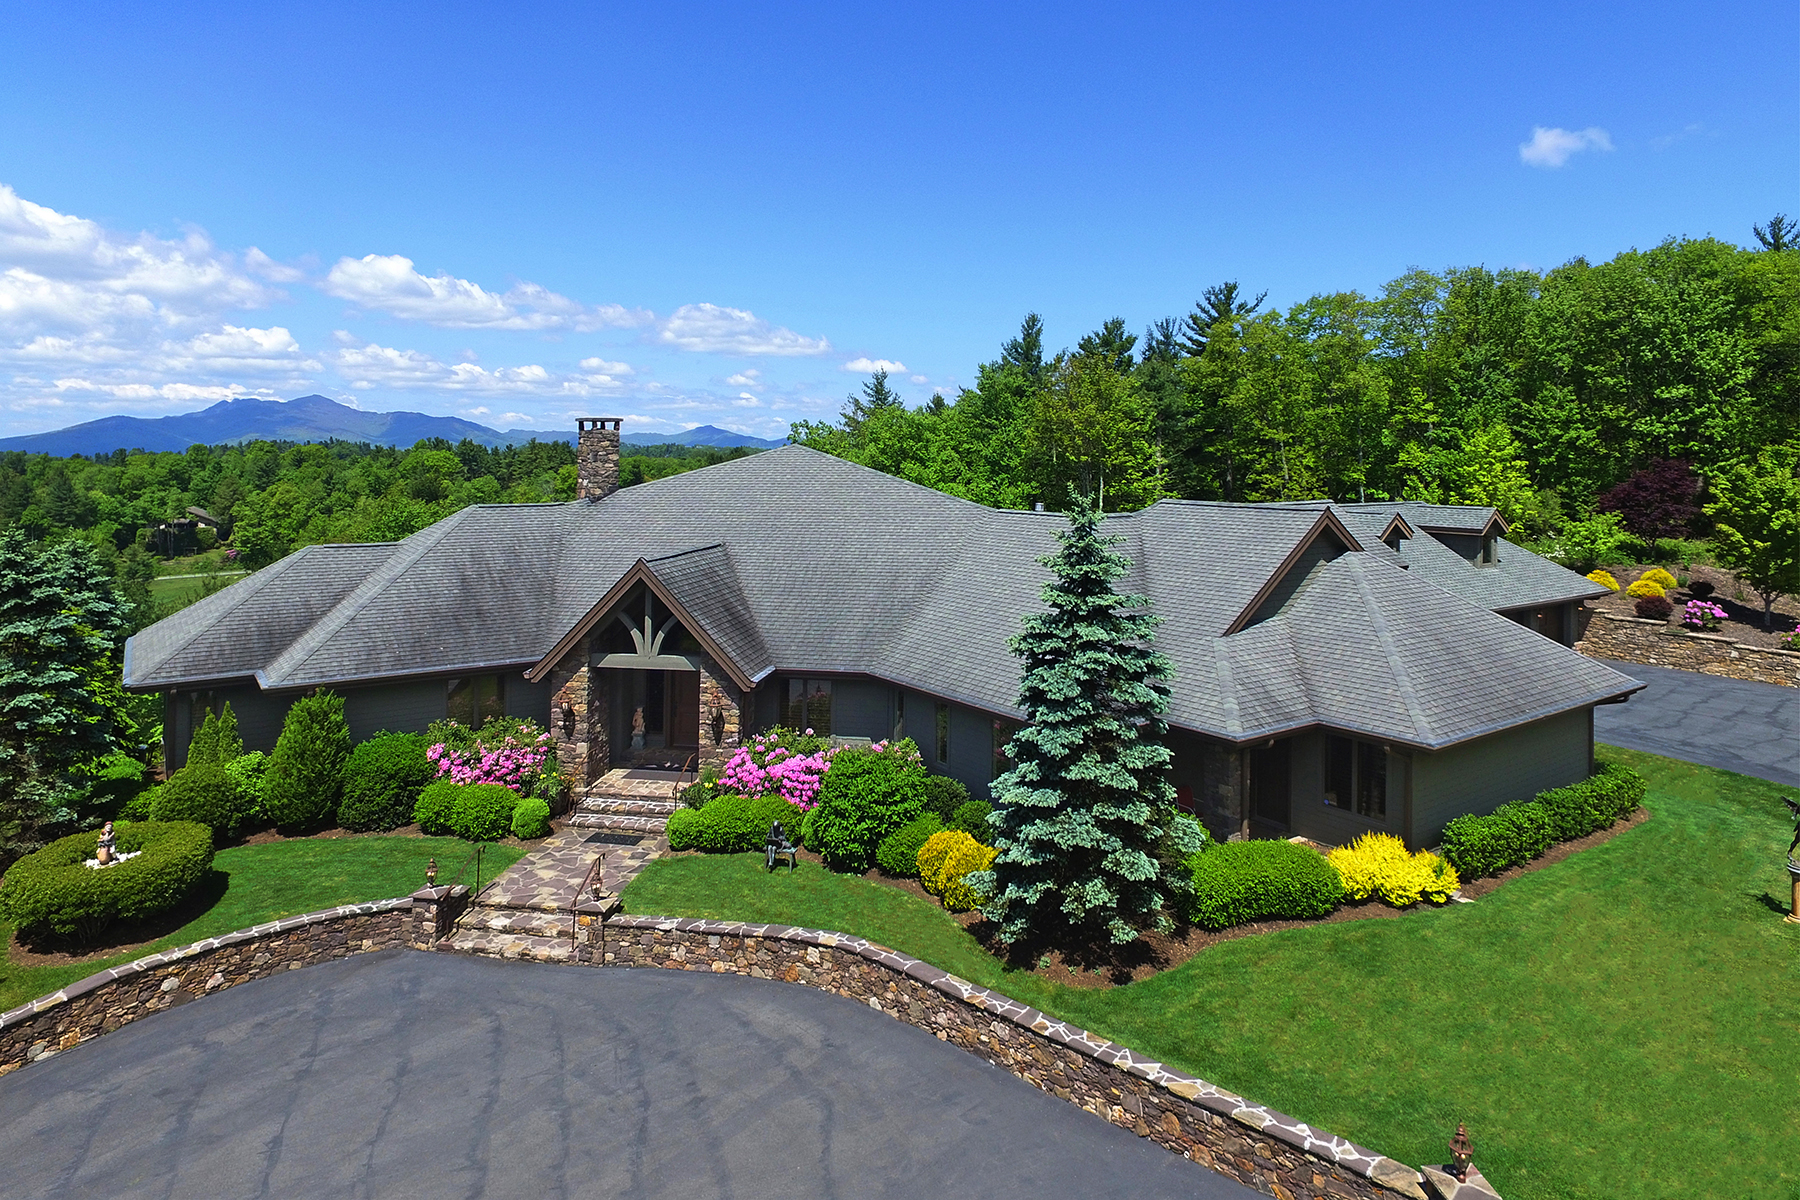 Single Family Home for Sale at BLOWING ROCK - WONDERLAND WOODS 375 Wonderland Dr, Blowing Rock, North Carolina 28605 United States